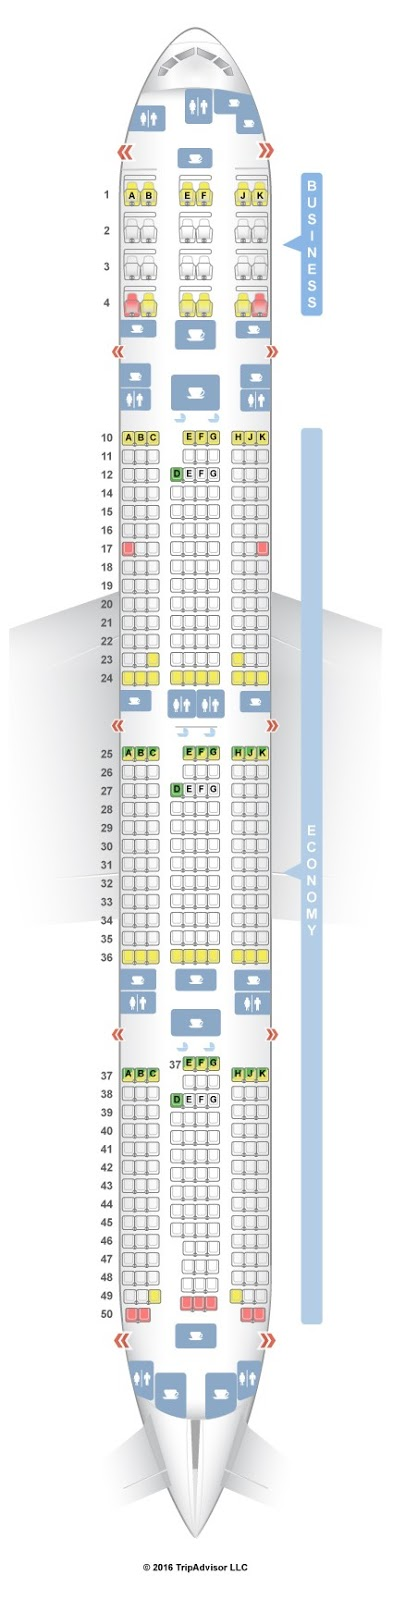 Lovely 777-300er Seat Map - Seat Inspiration